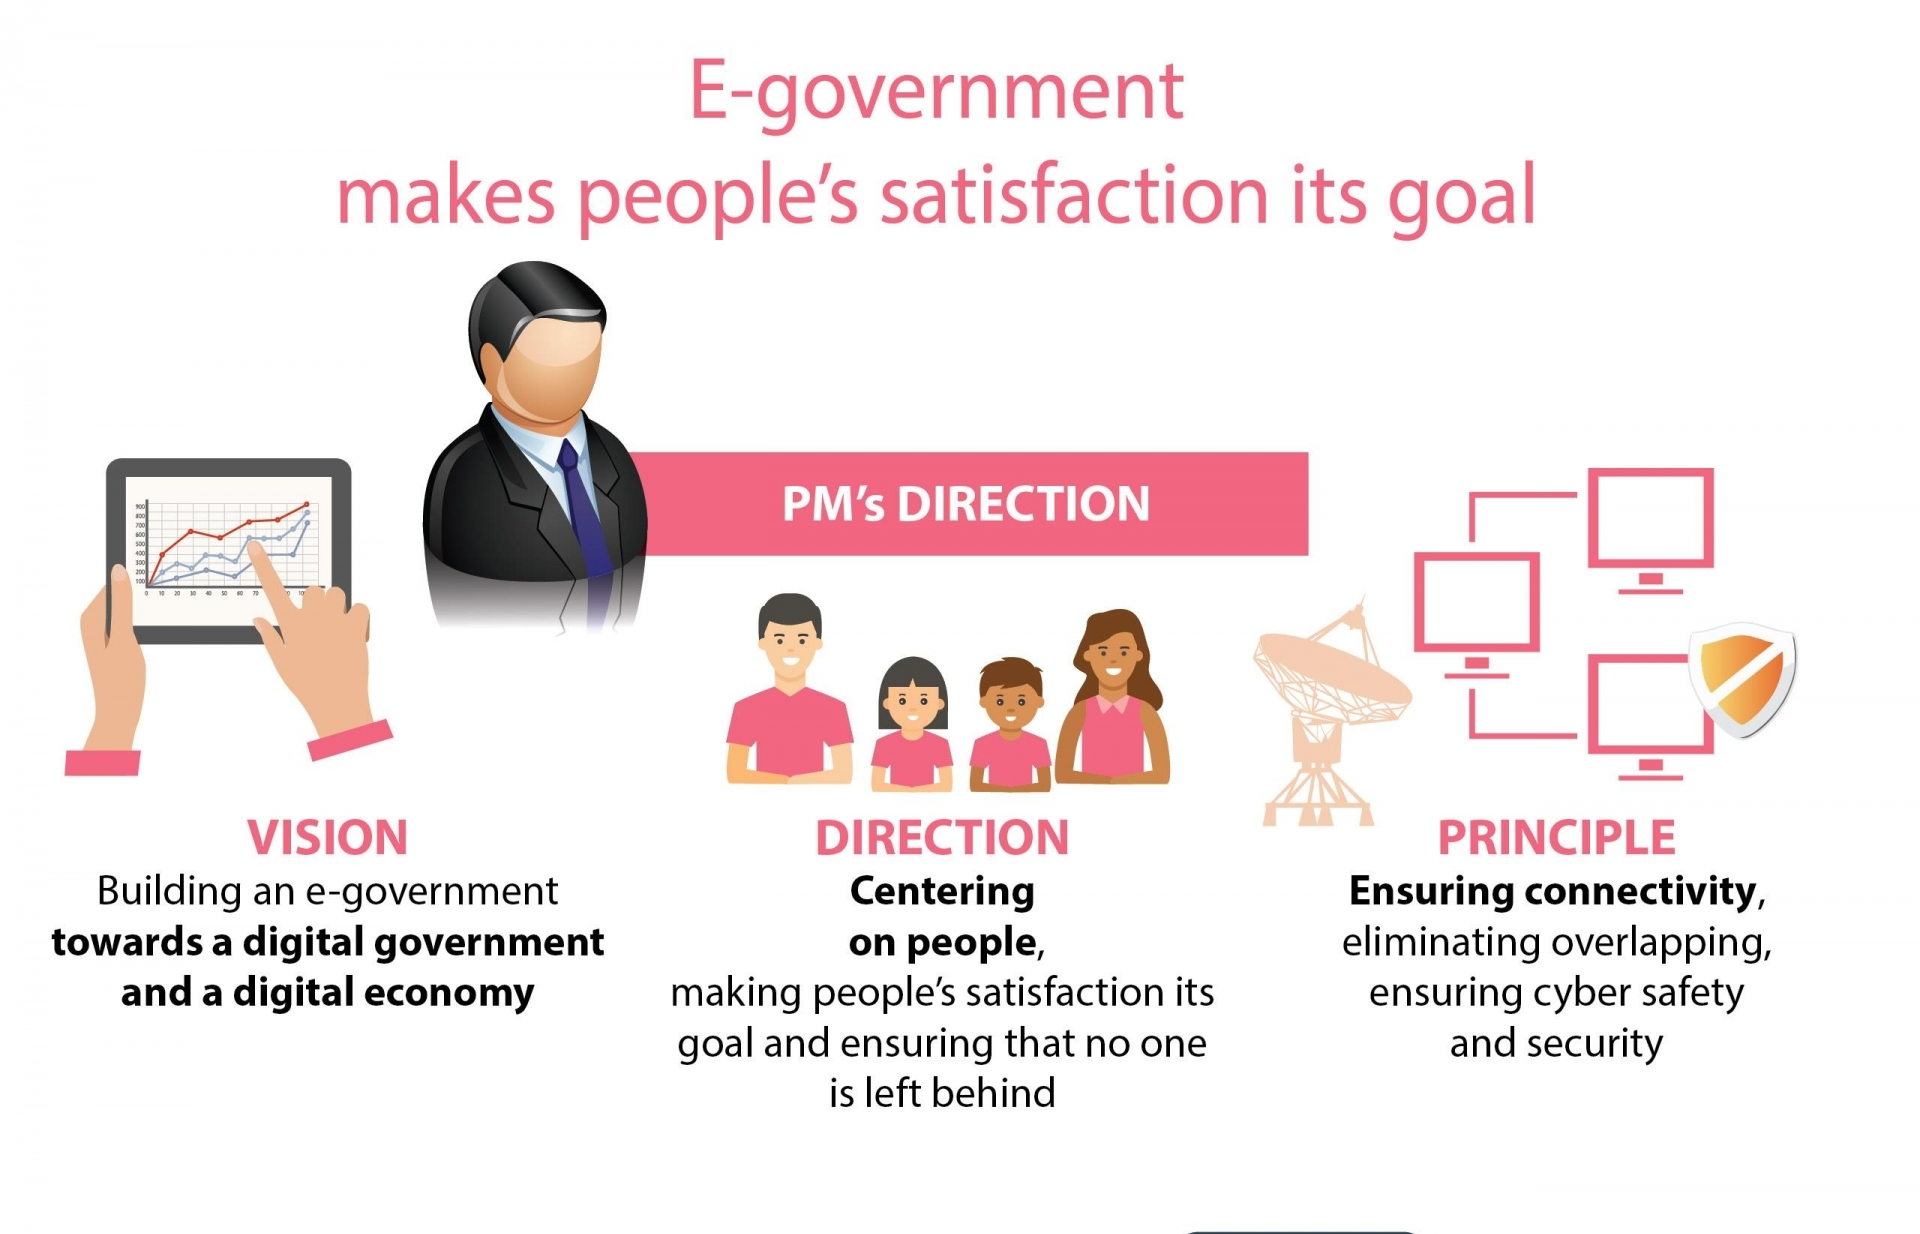 e government makes peoples satisfaction its goal